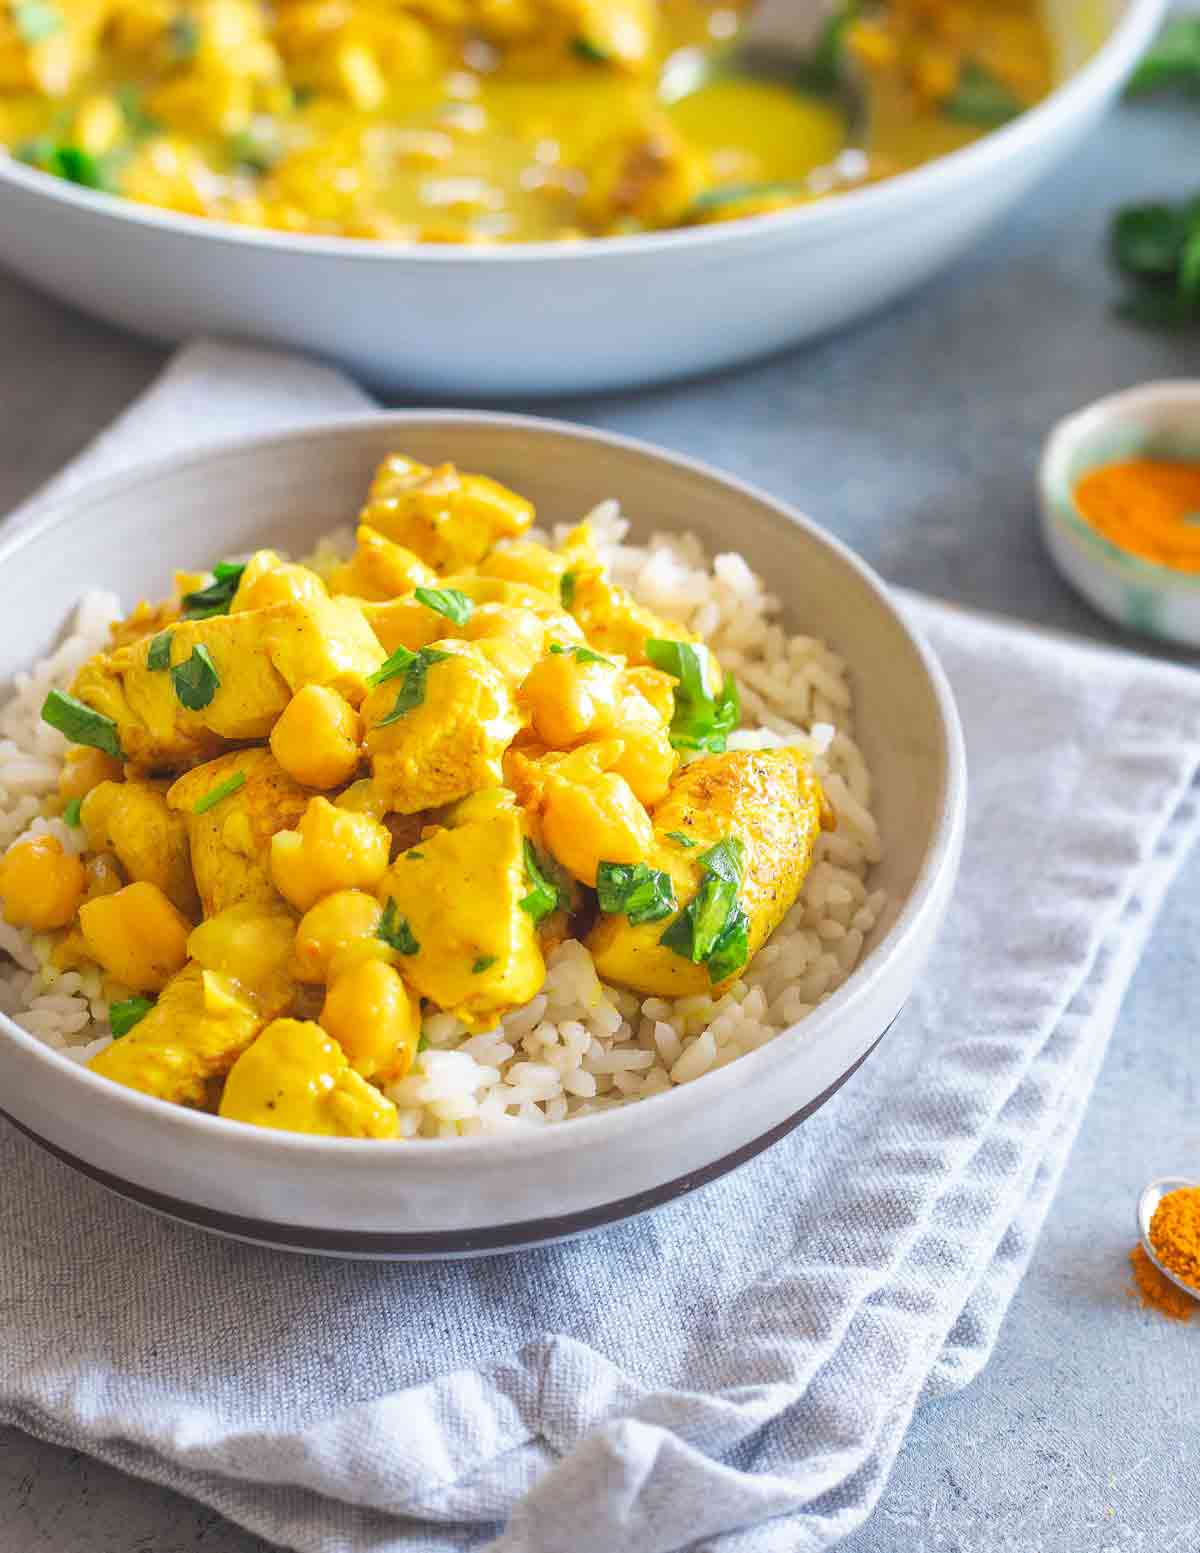 This creamy turmeric chicken is an easy one-skillet meal with hearty chickpeas. Serve it over rice with a cilantro garnish for a delicious dinner in under 30 minutes.